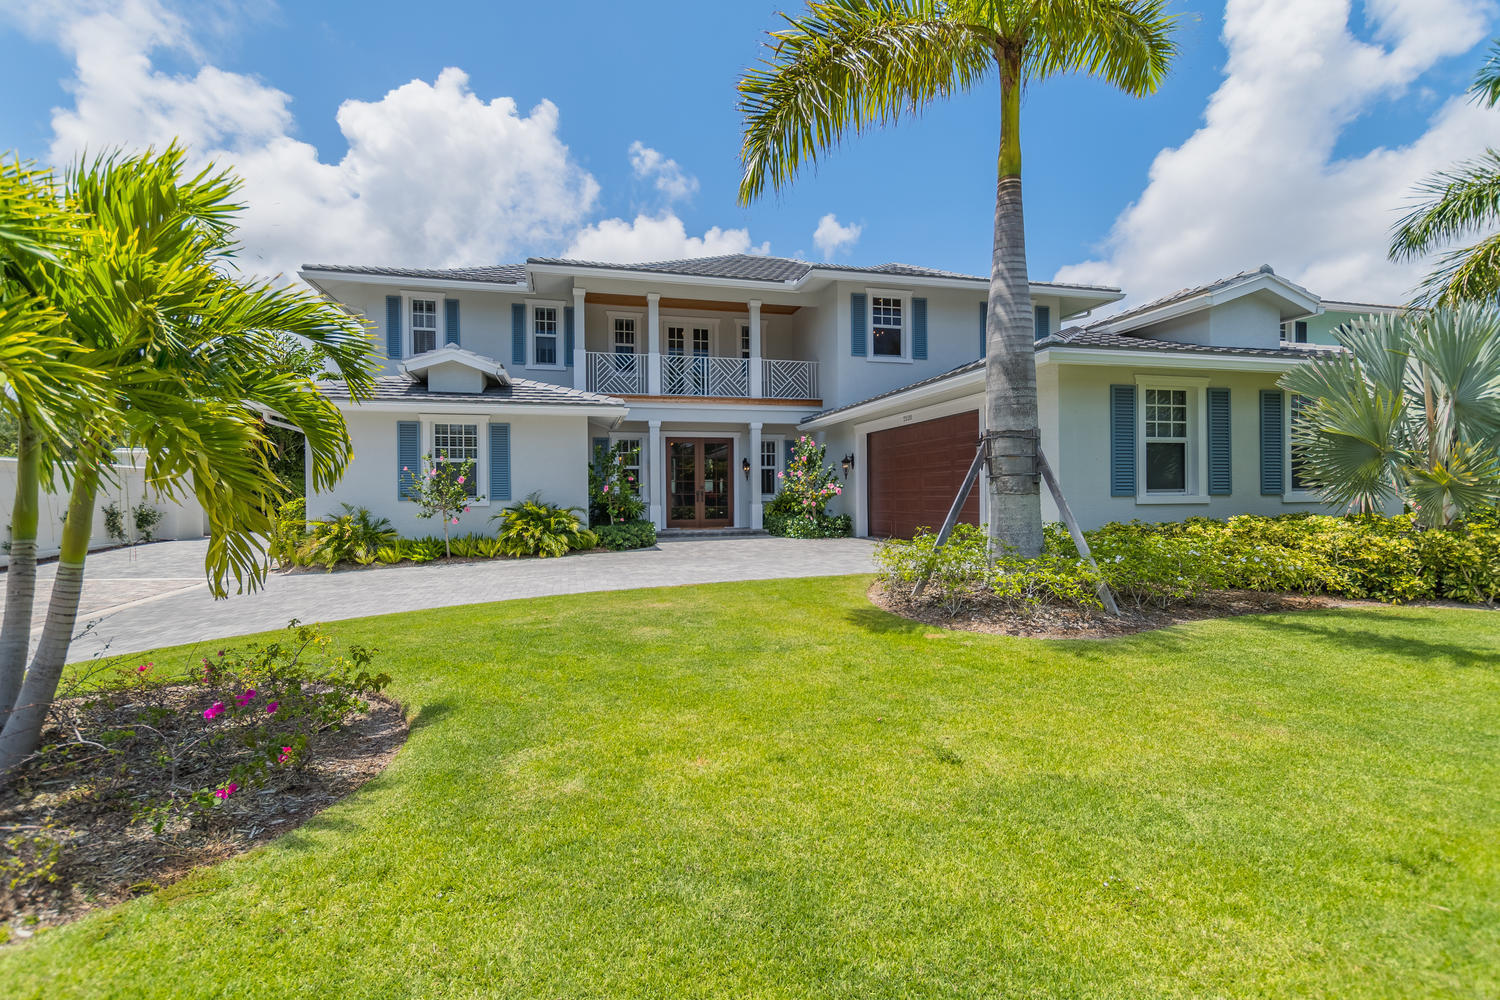 2520 Estates Drive 3, North Palm Beach, Florida 33410, 5 Bedrooms Bedrooms, ,5.1 BathroomsBathrooms,A,Single family,Estates,RX-10603681